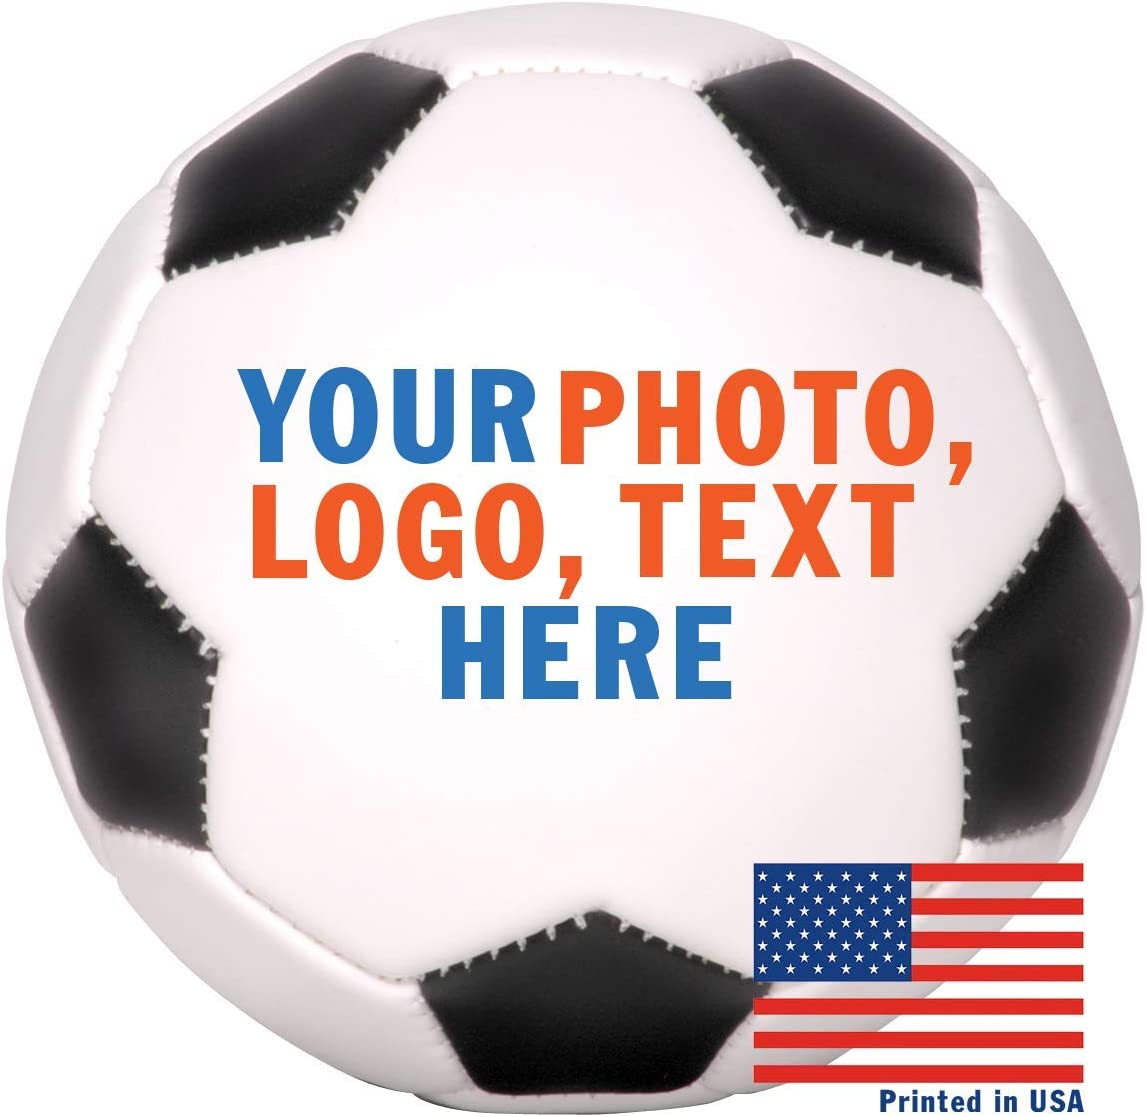 Custom Personalized Full Size Soccer Ball - Ships in 3 Business Day, High Resolution Photos, Logos & Text on Soccer Balls - for Players, Trophies, MVP Awards, Coaches, Personalized Gifts 61ALUMhxQwL